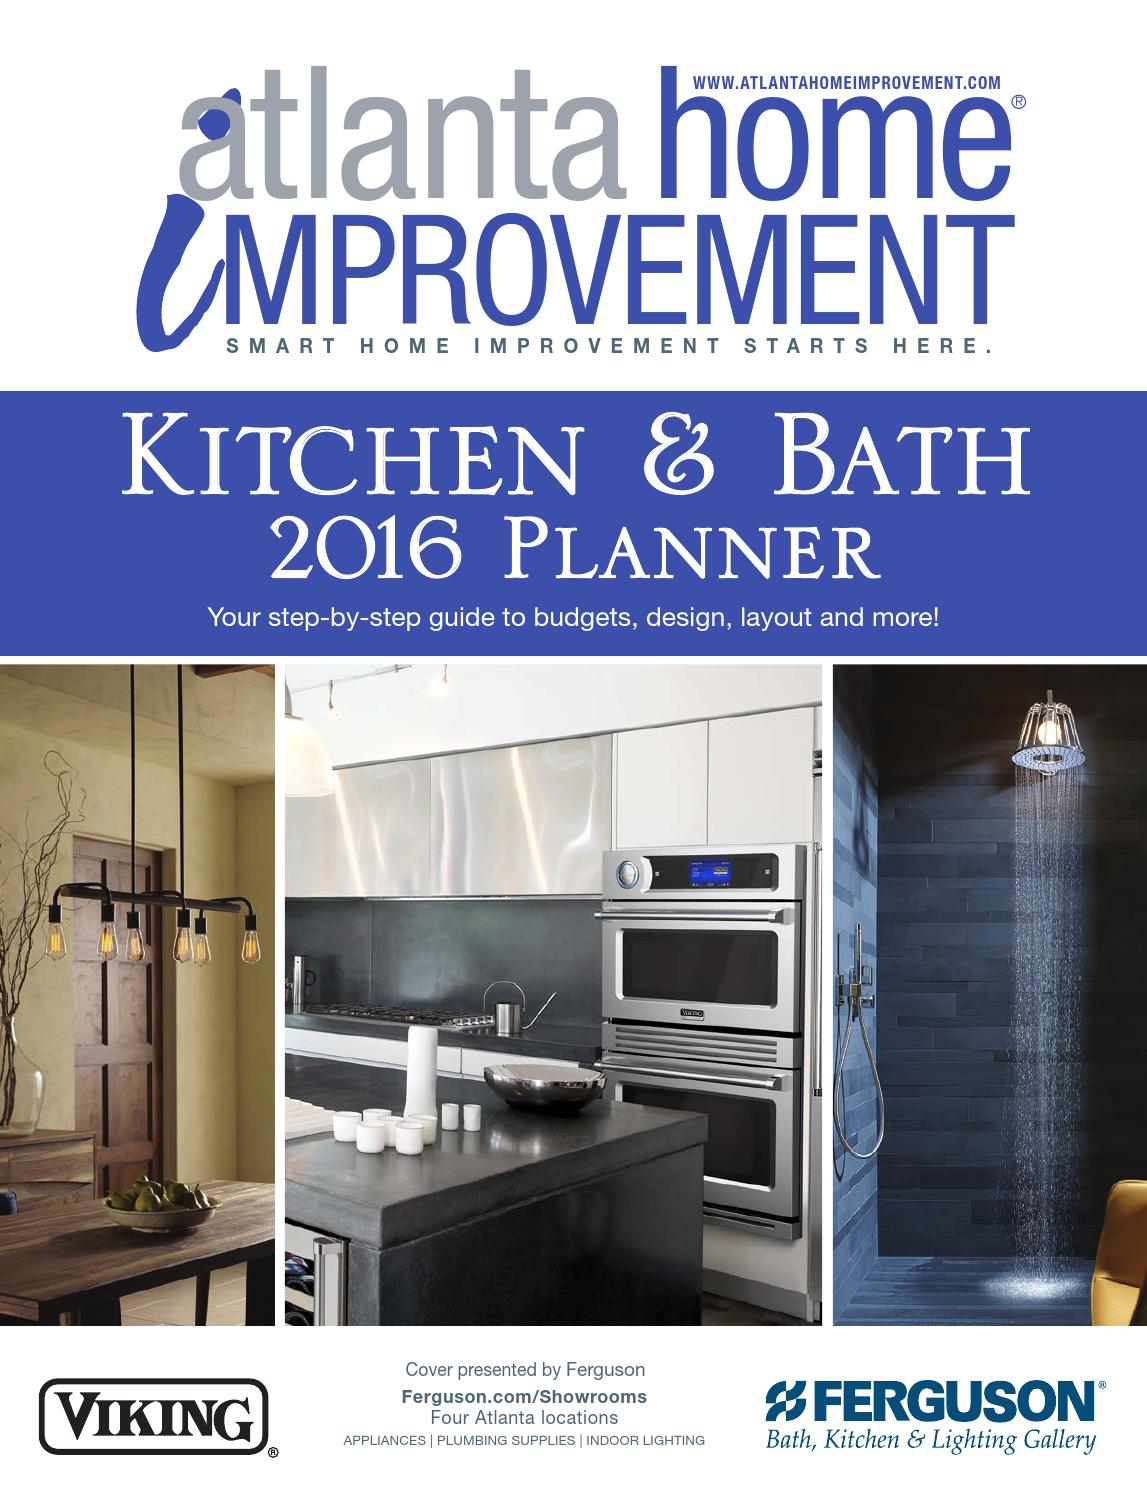 Wholesale Kitchen Cabinets Atlanta 1216 Kitchen And Bath Planner By My Home Improvement